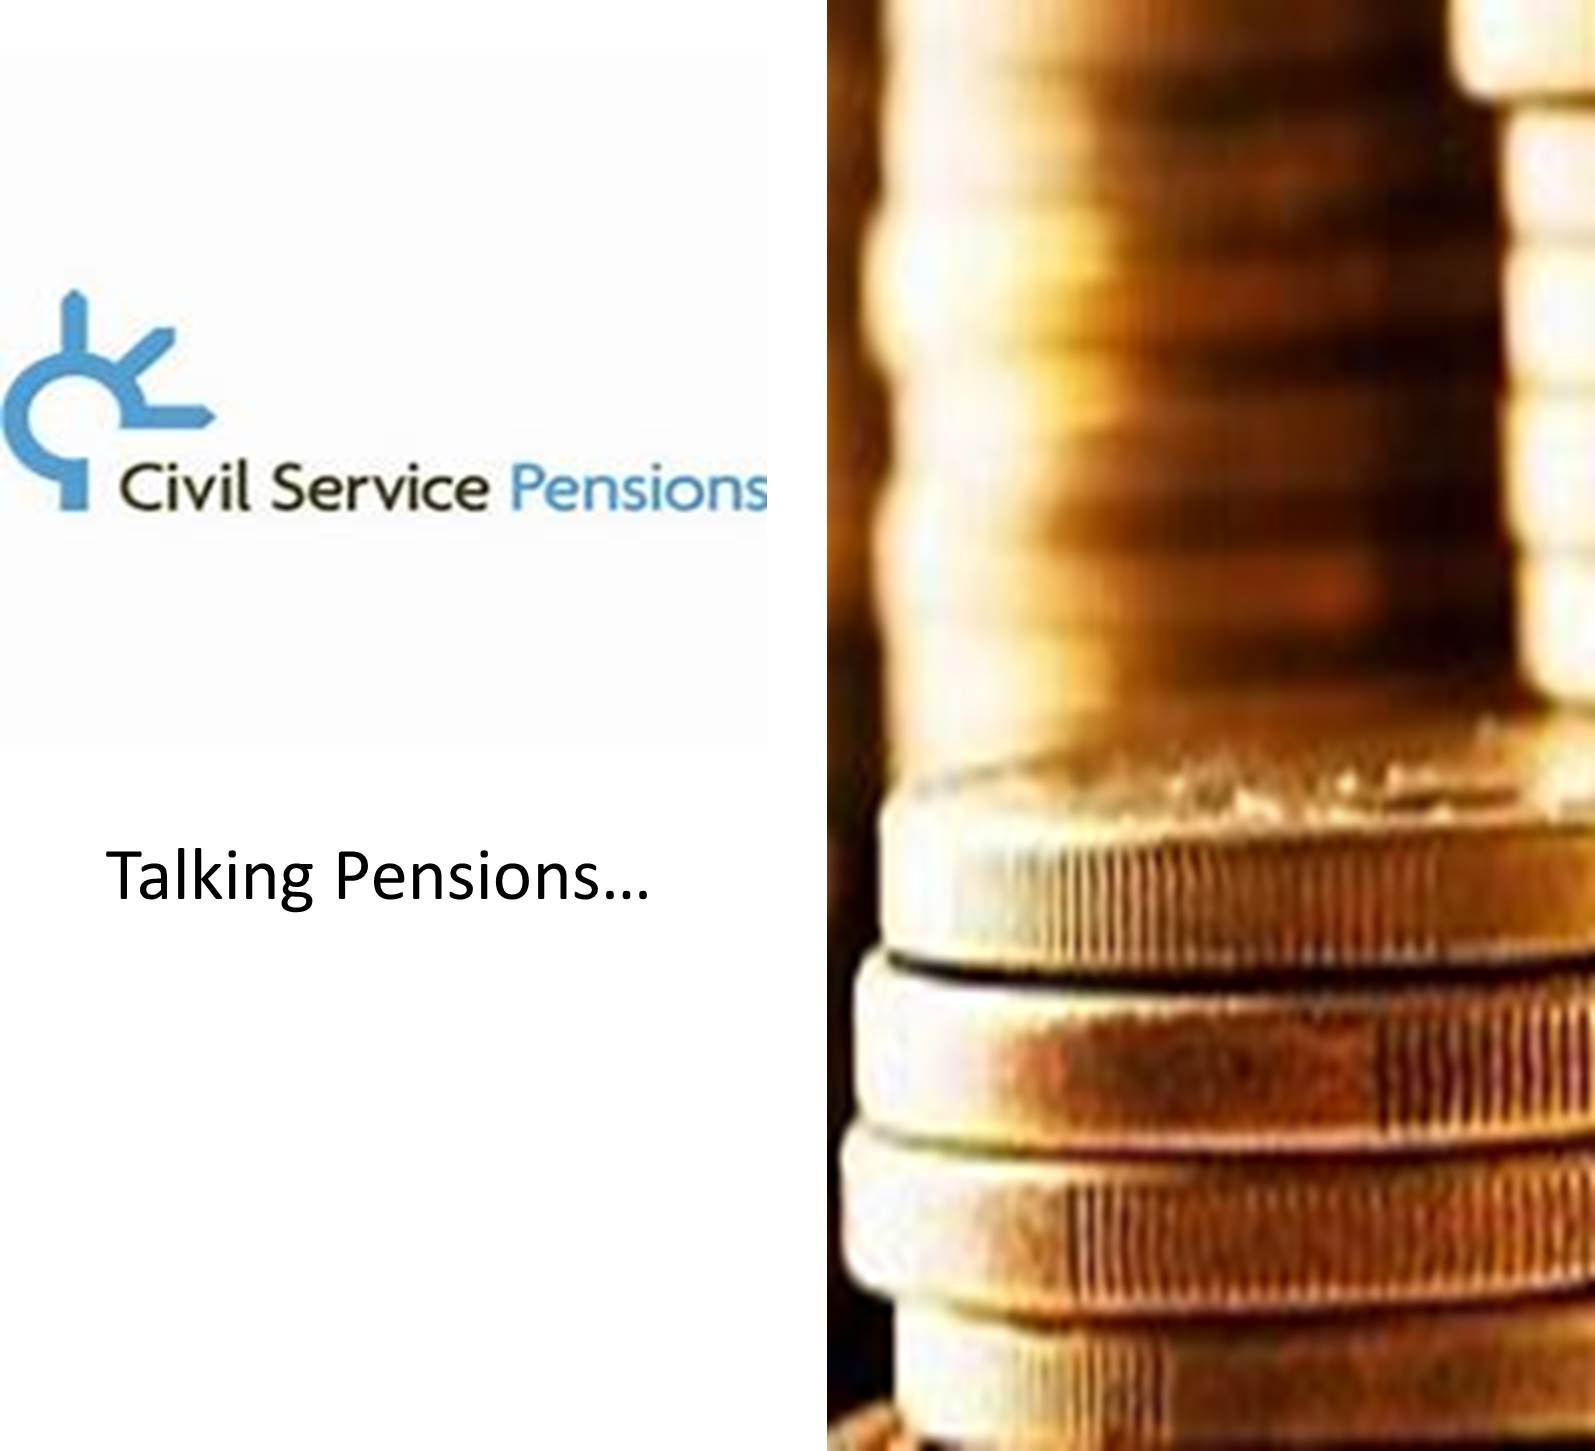 CSPS Talking Pensions